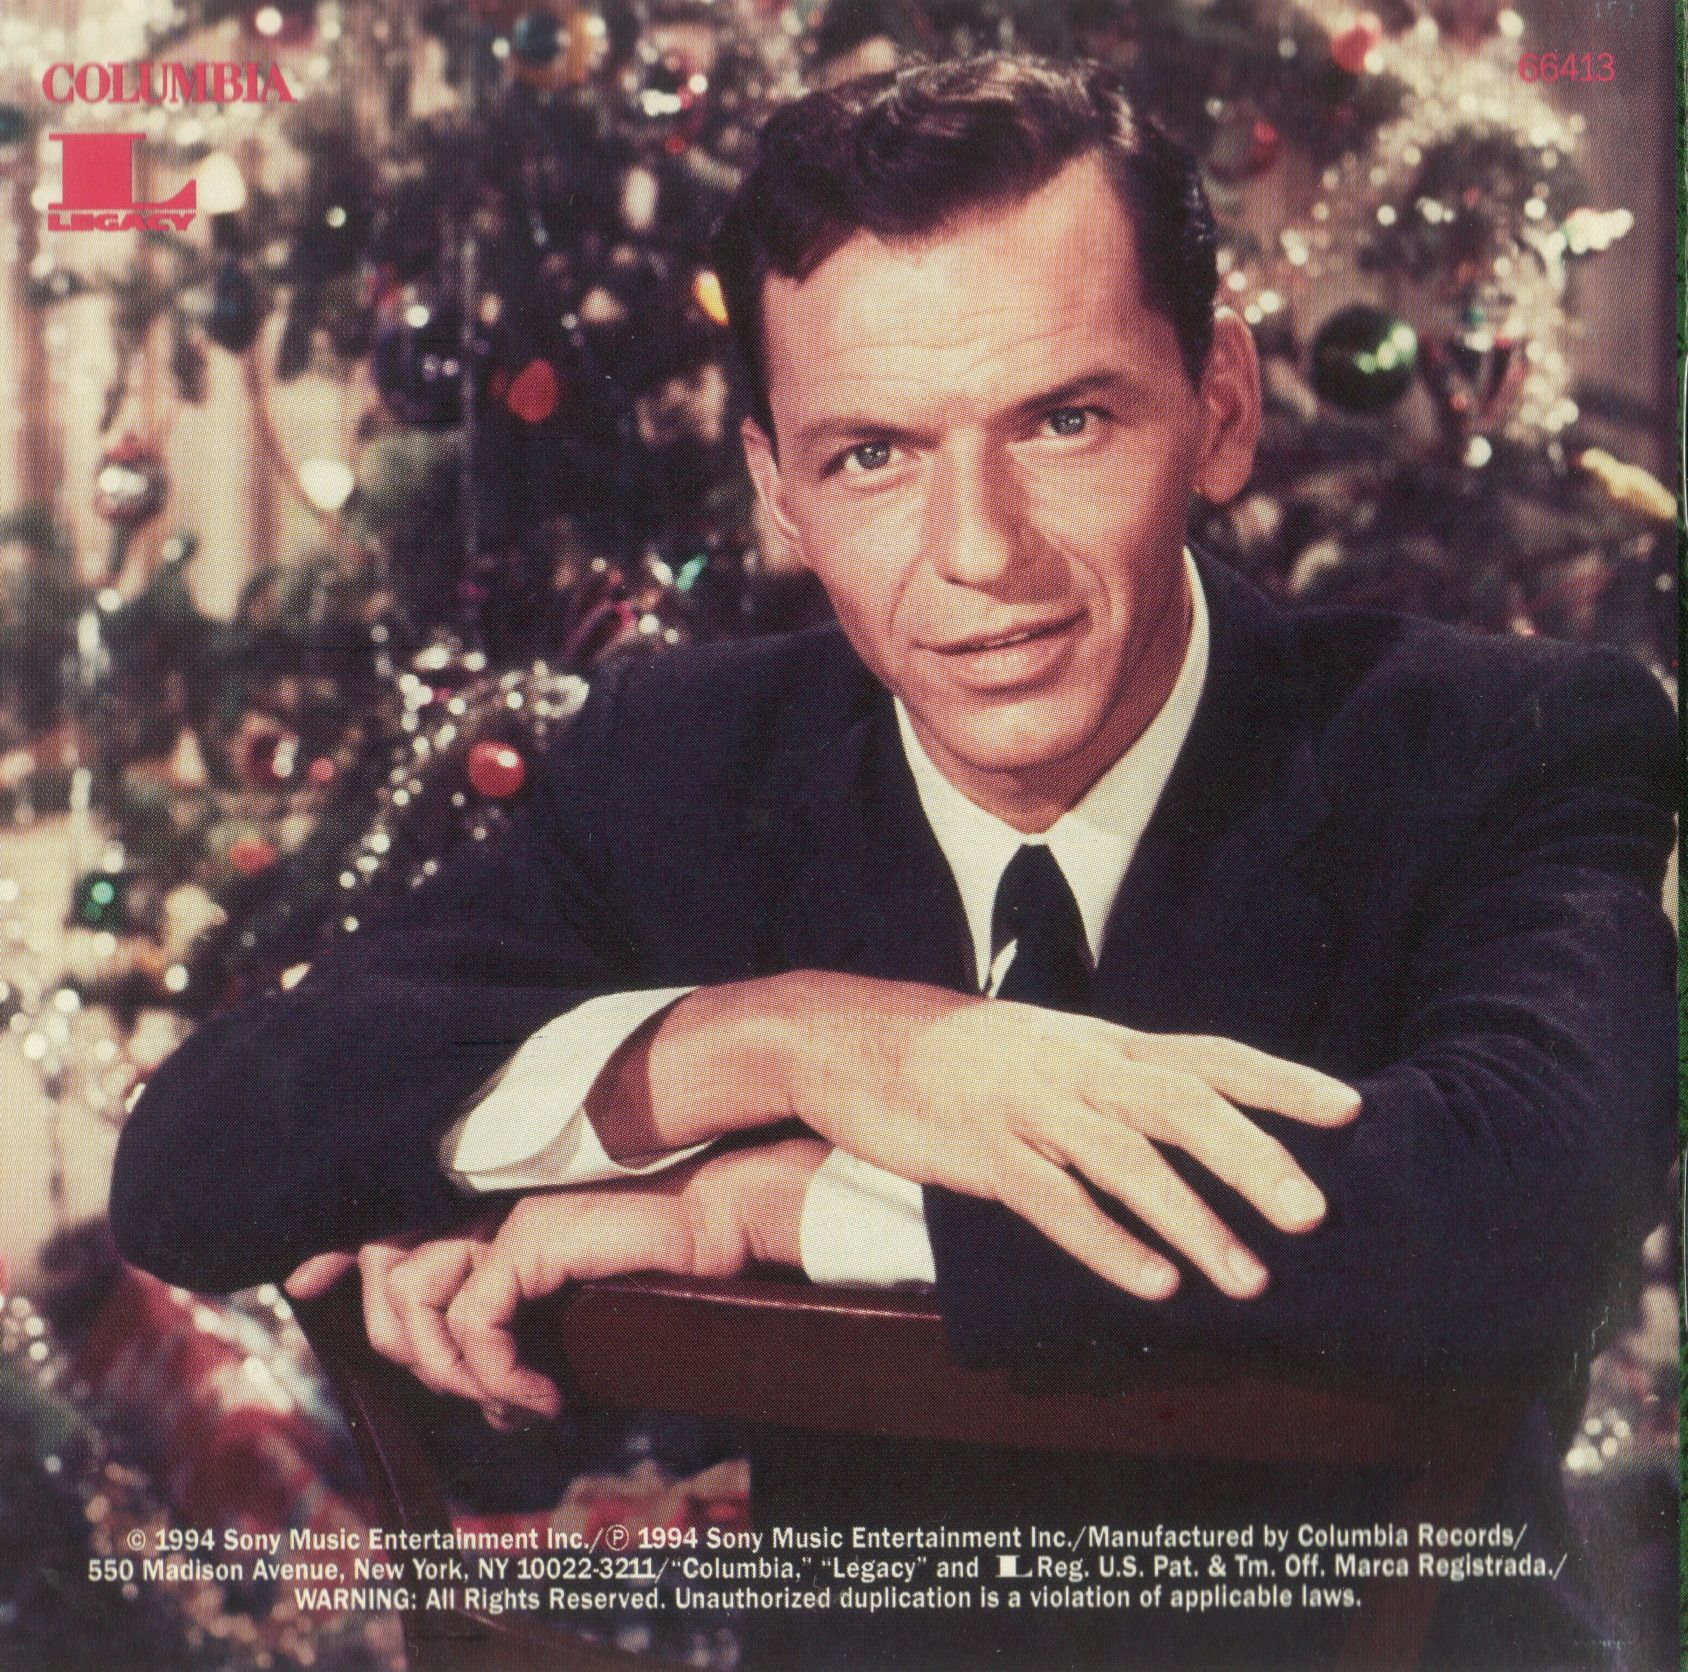 Frank Sinatra Weihnachtslieder.Frank Sinatra Christmas Songs By Sinatra 1948 Back Cover